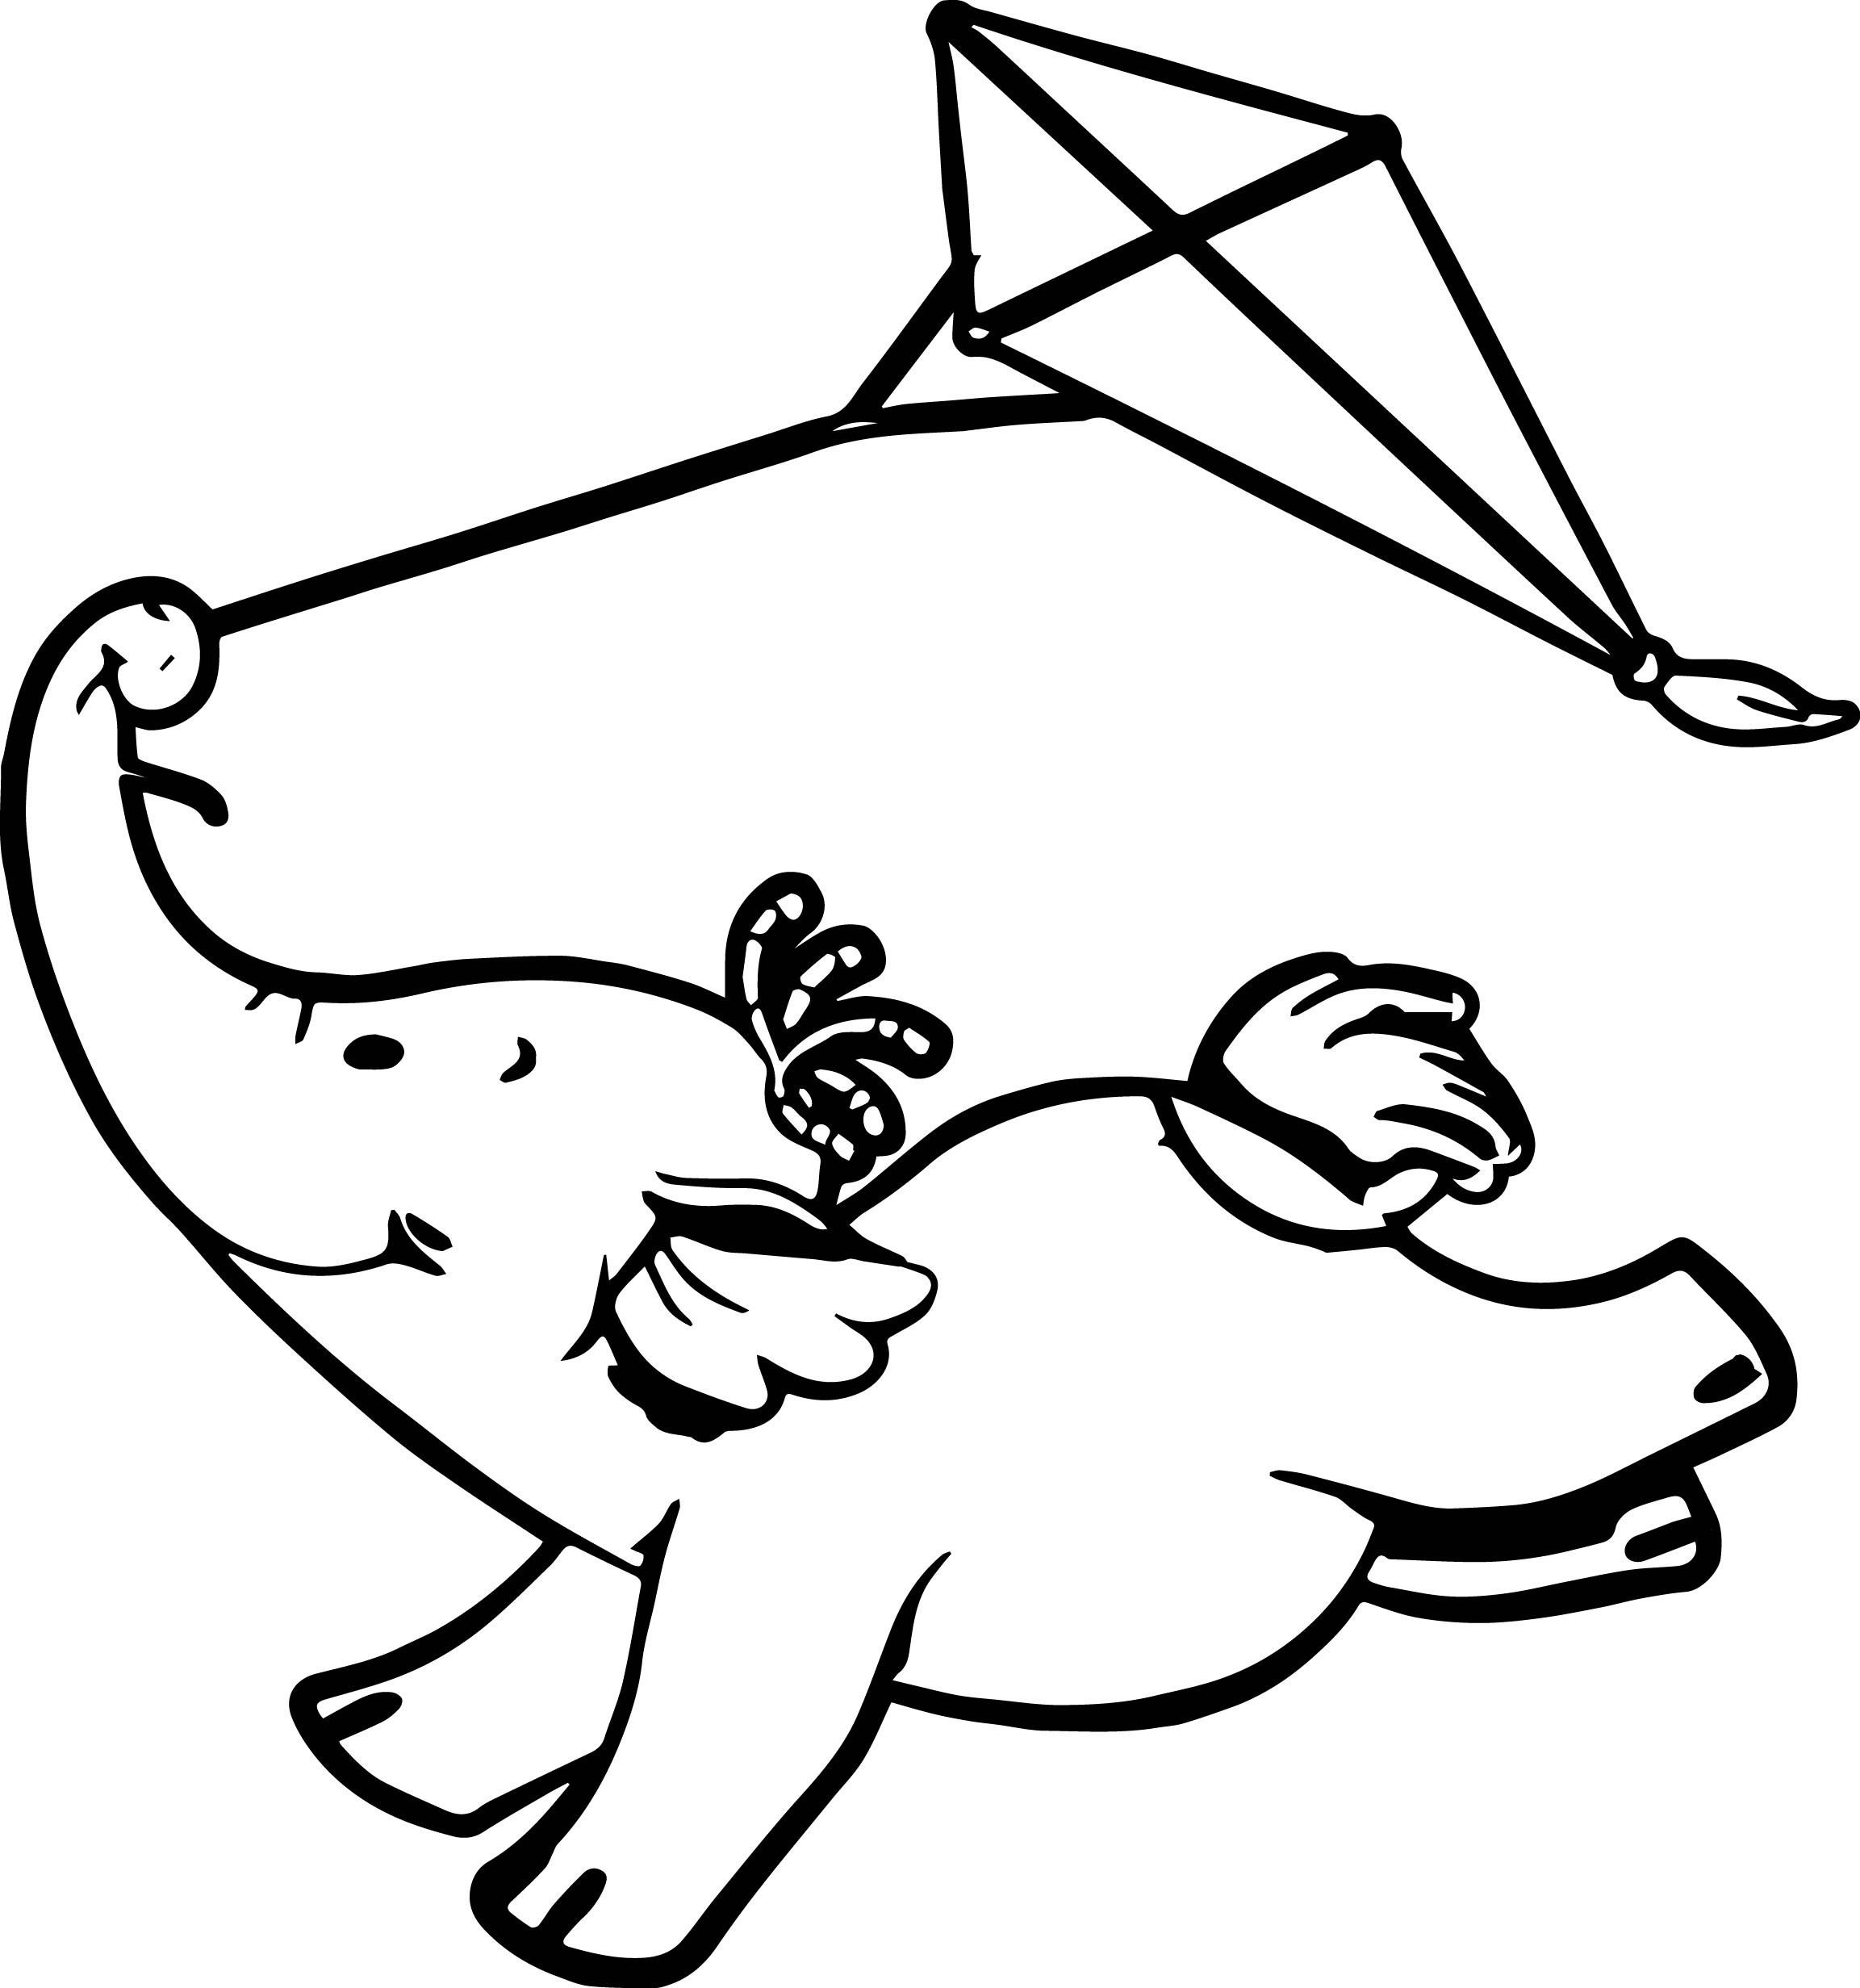 2305x2463 Insider Fly Guy Coloring Pages Magnificent Gal